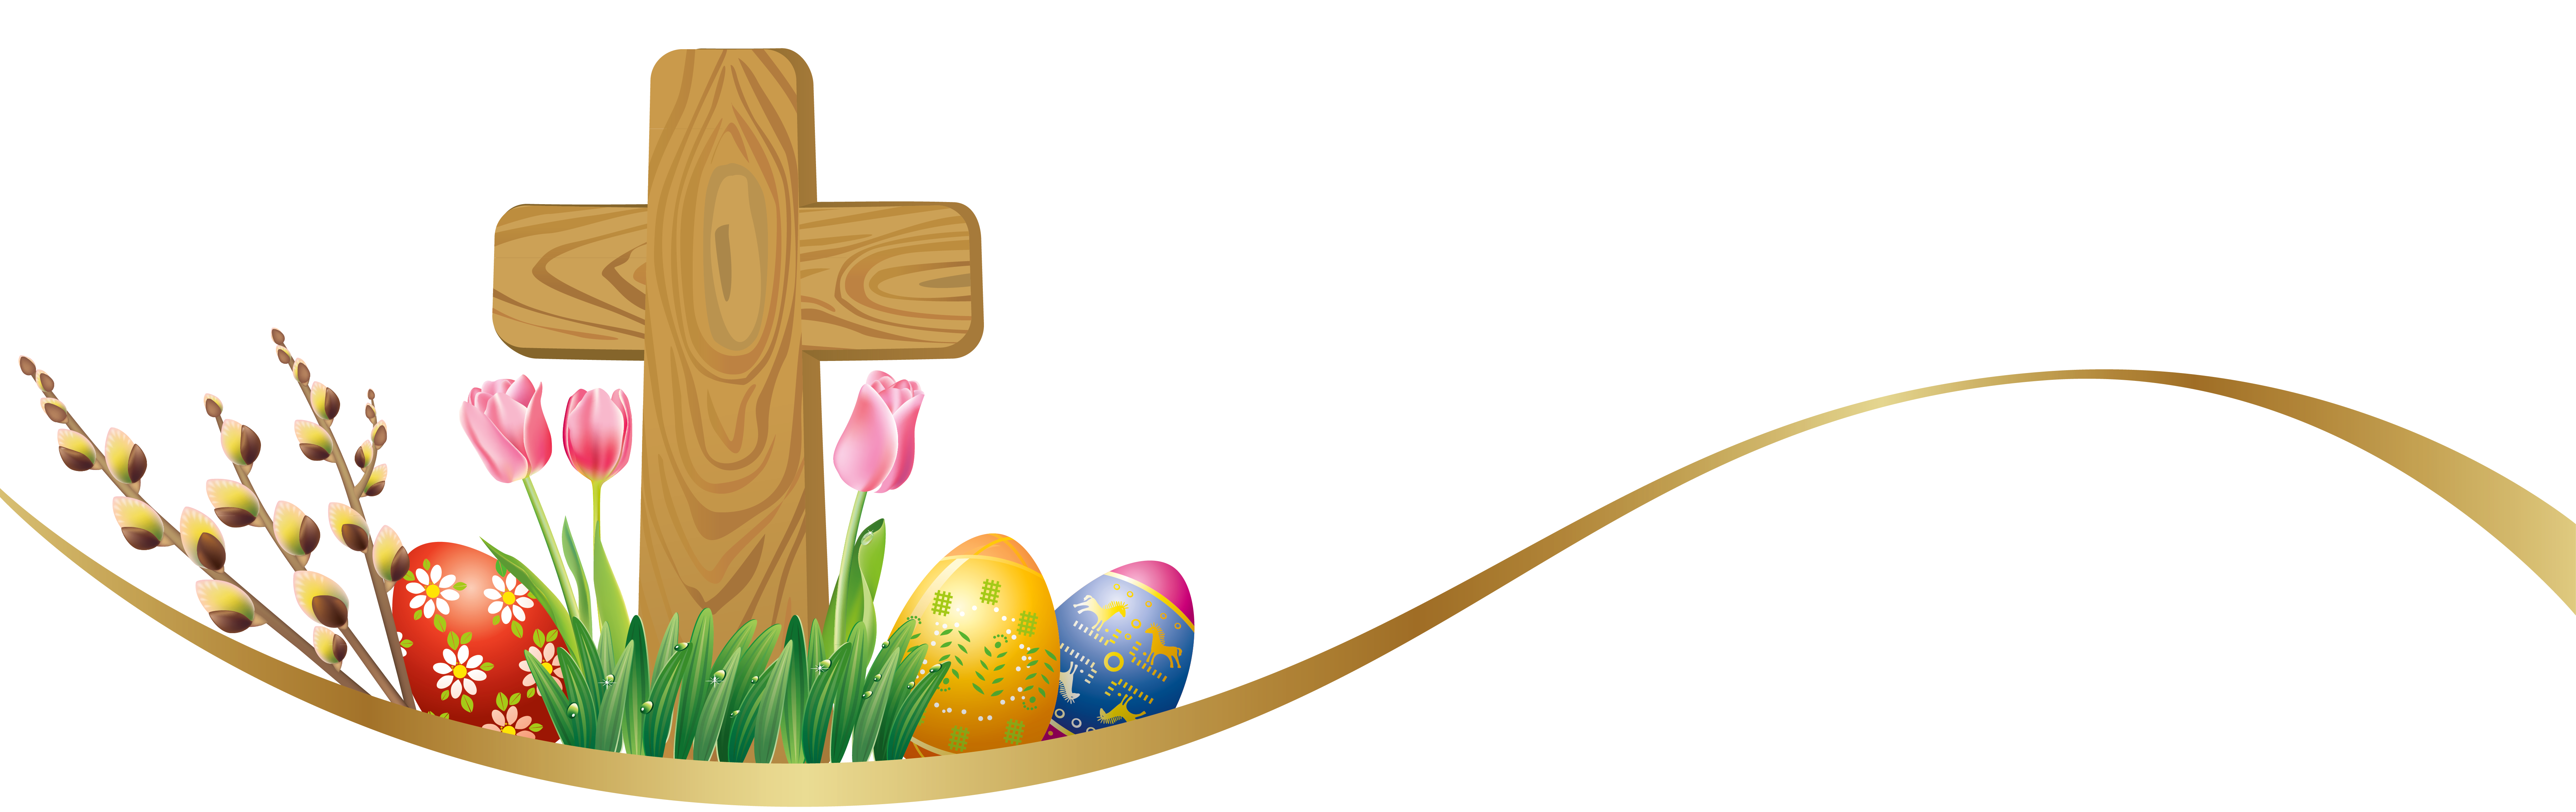 happy easter clipart cross